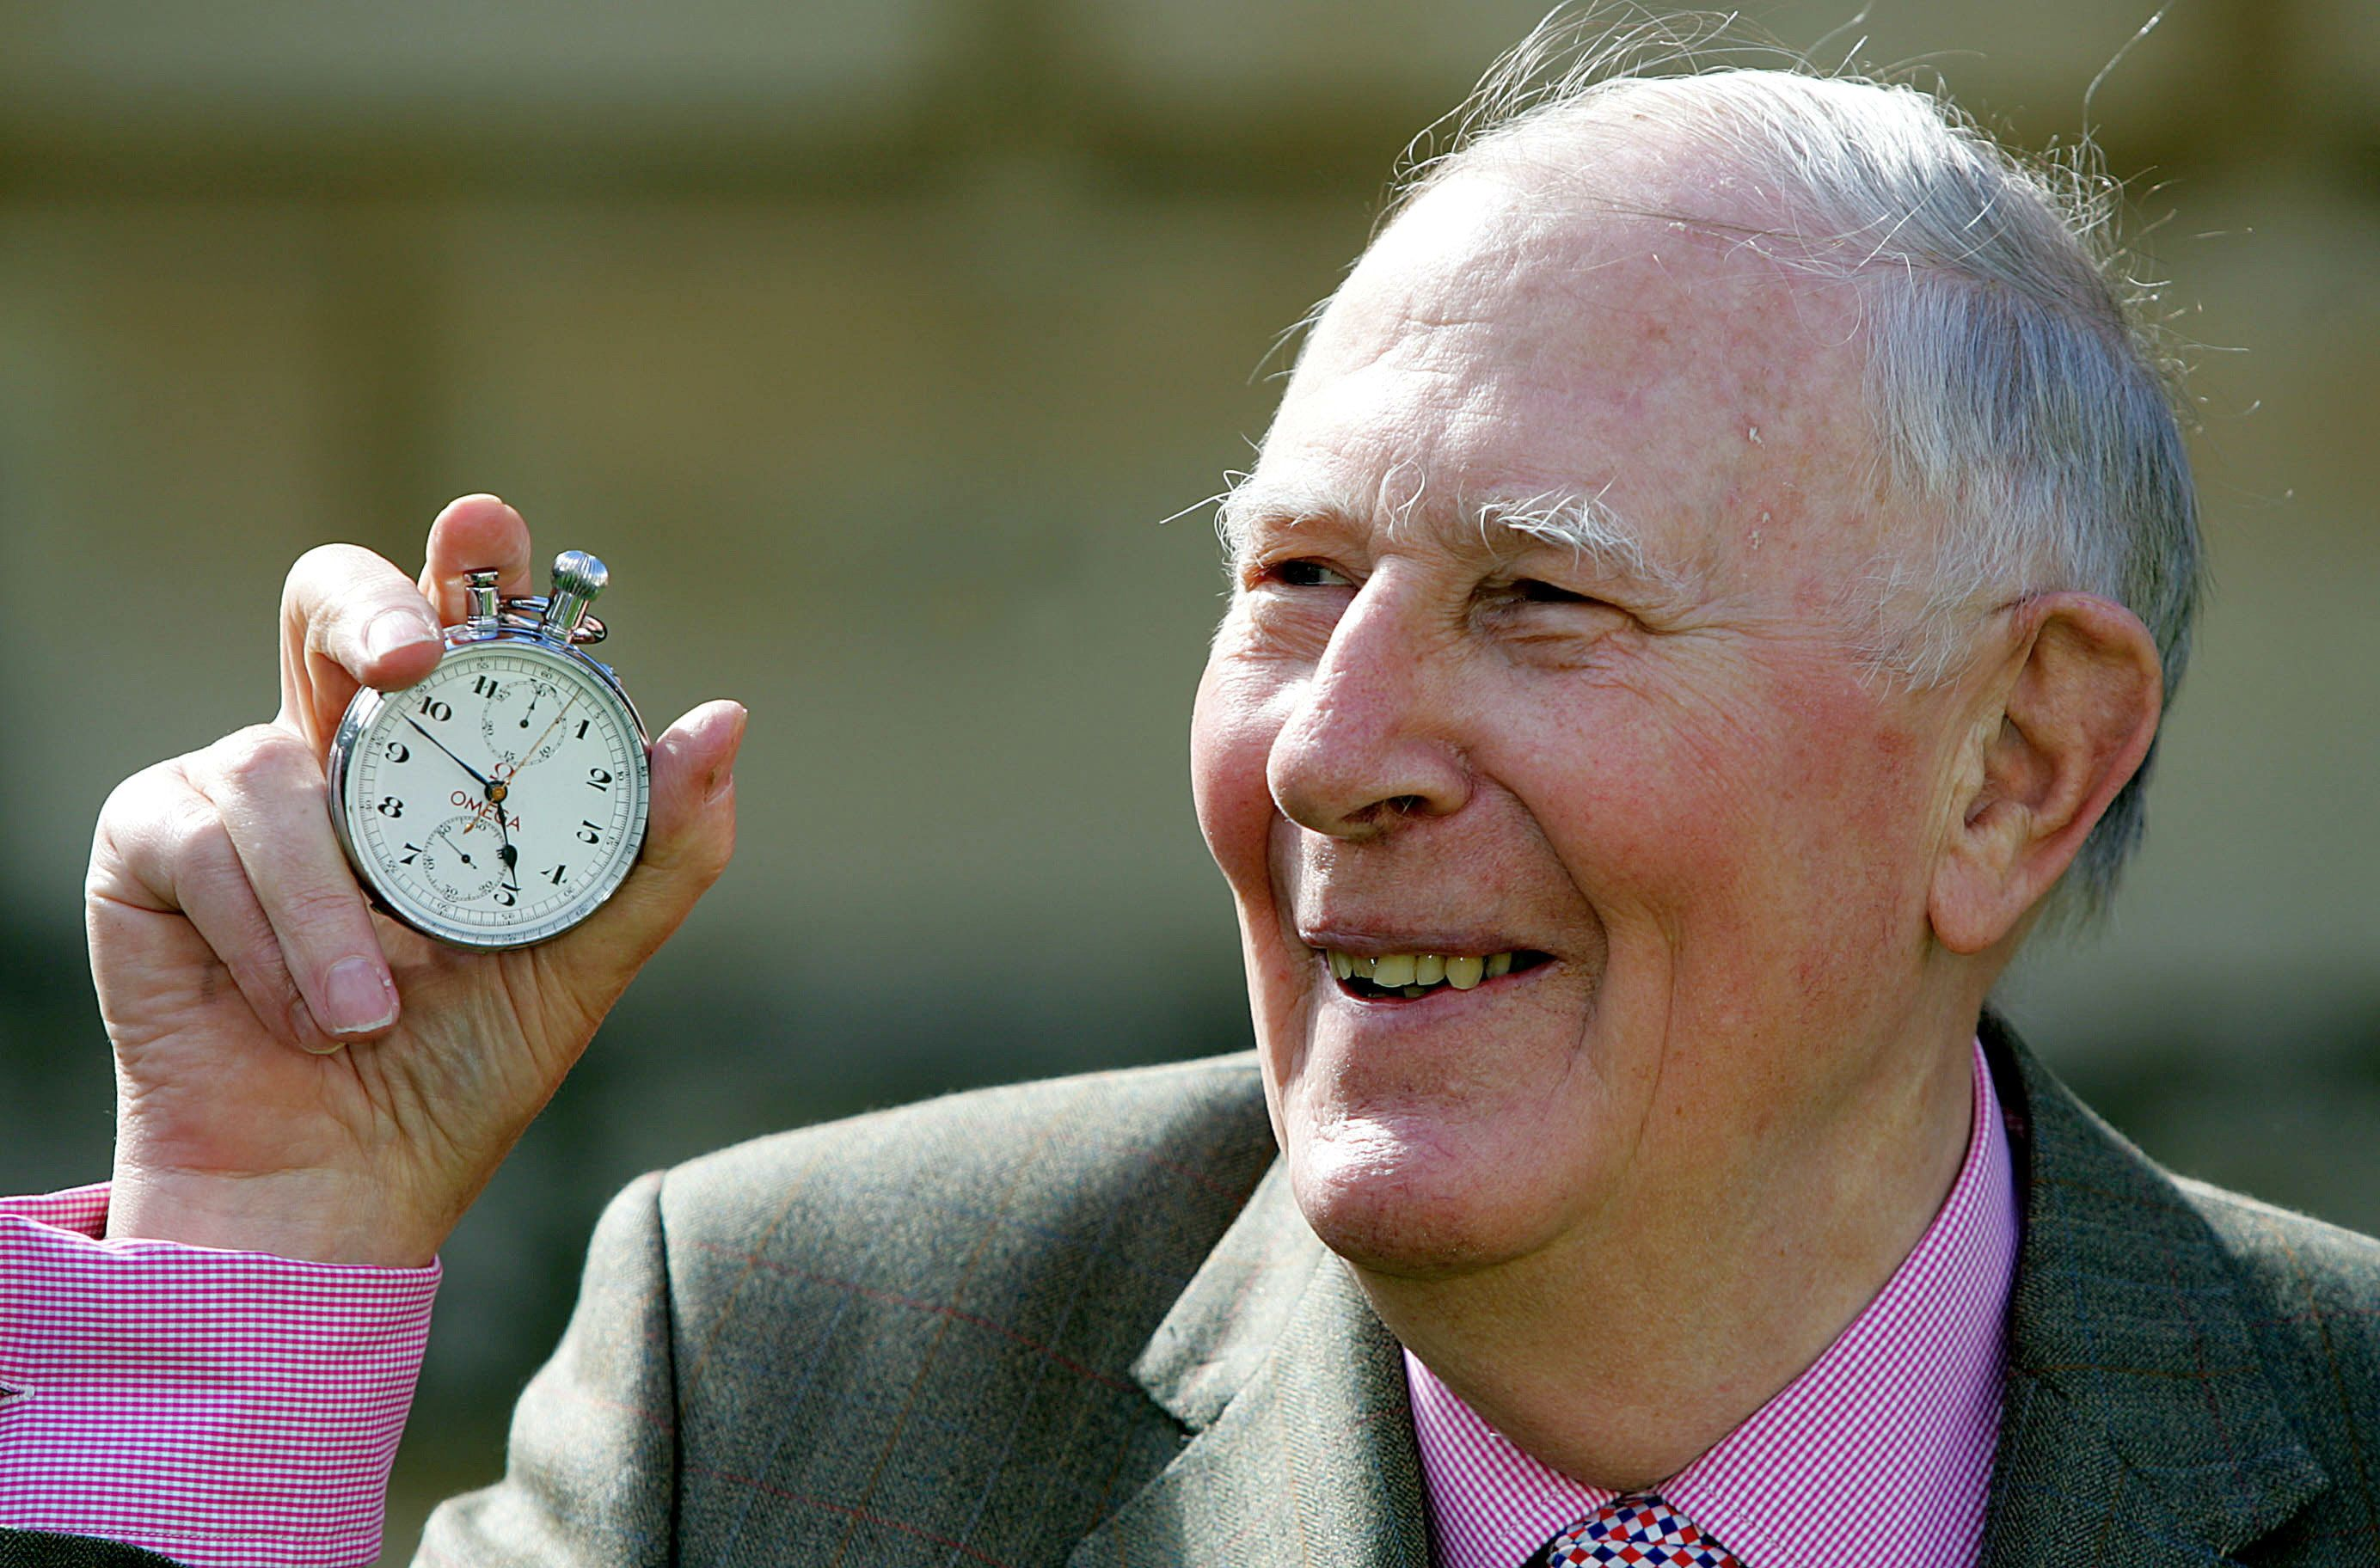 Sir Roger Bannister, who ran the first sub-four-minute mile in 1954, holds the stop watch used by [Harold Abrahams] to time the race during 50th anniversary celebrations at Pembroke College, Oxford, May 6, 2004. [Sir Roger was a 25-year-old medical student when he recorded a time of 3mins 59.4 secs for the mile on May 6 1954.]